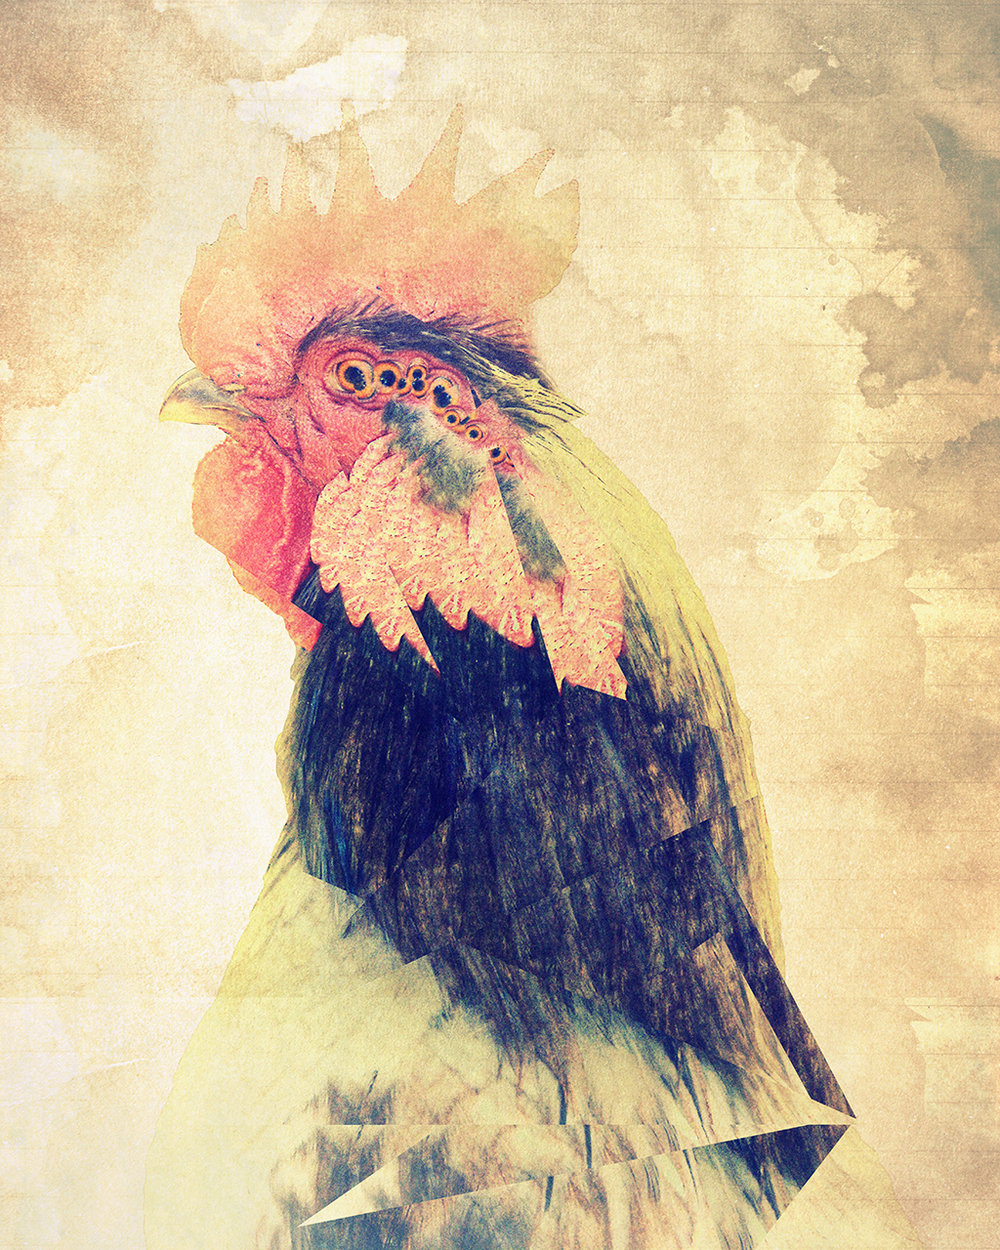 2015 Allegany Arts Council Member's Show - Saville and Schwab Galleries, Cumberland, MD1st Place: Professional CategoryAnimalia: RoosterThe rooster has become a crowd pleaser.  It was one of my first few attempts at digital manipulation.  The rooster was in an enclosure on a horse farm going towards Oldtown, MD.